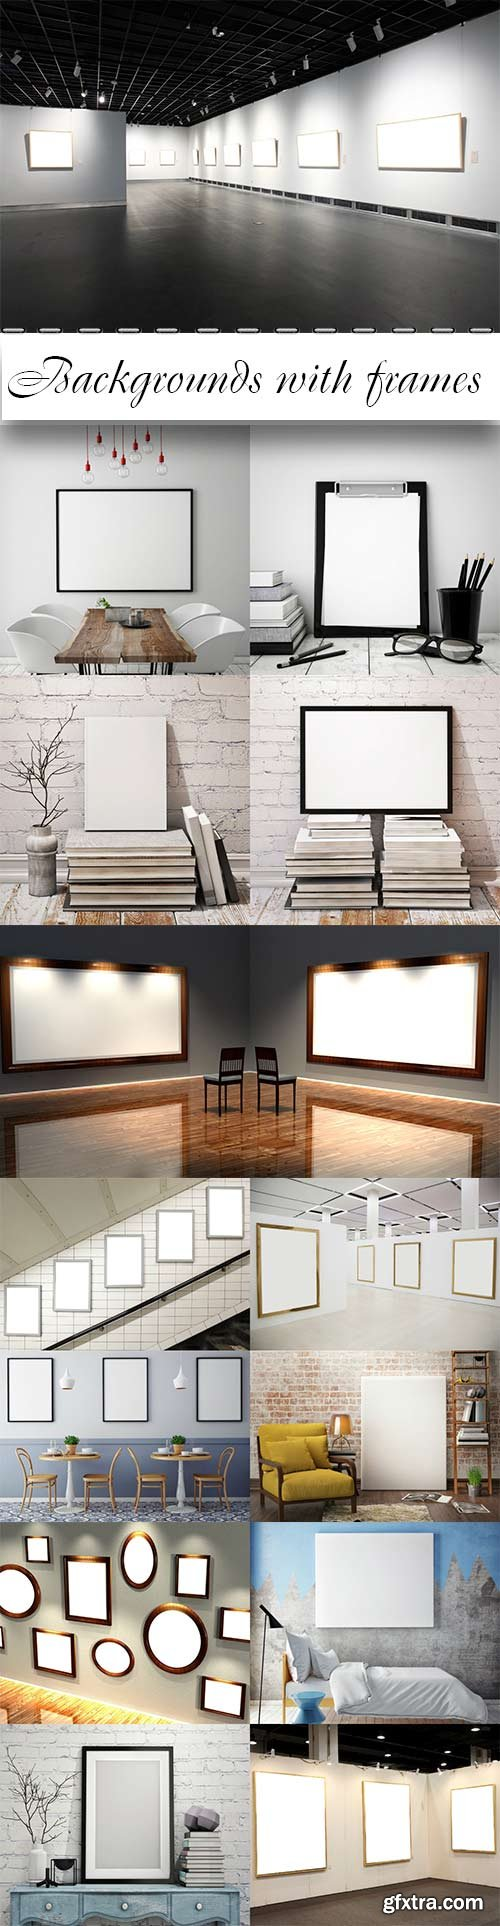 Raster backgrounds with frames